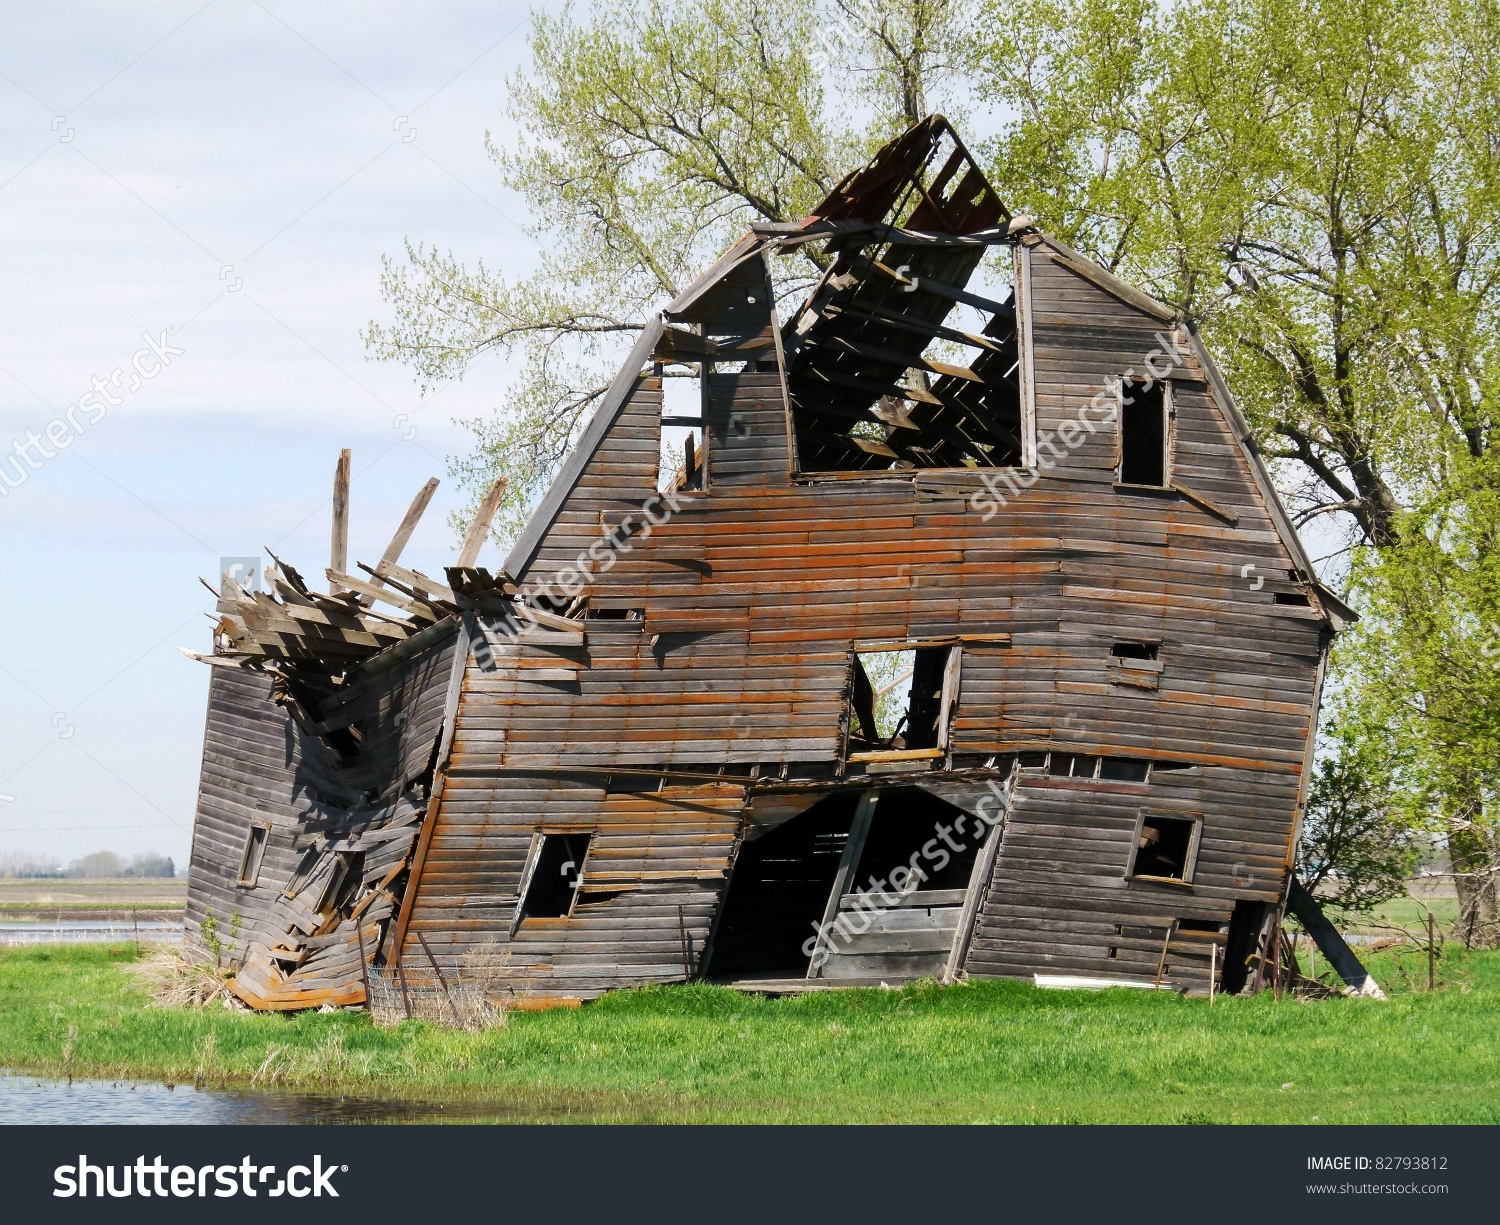 Dilapidated Farm Building Barn Stock Photo 82793812.